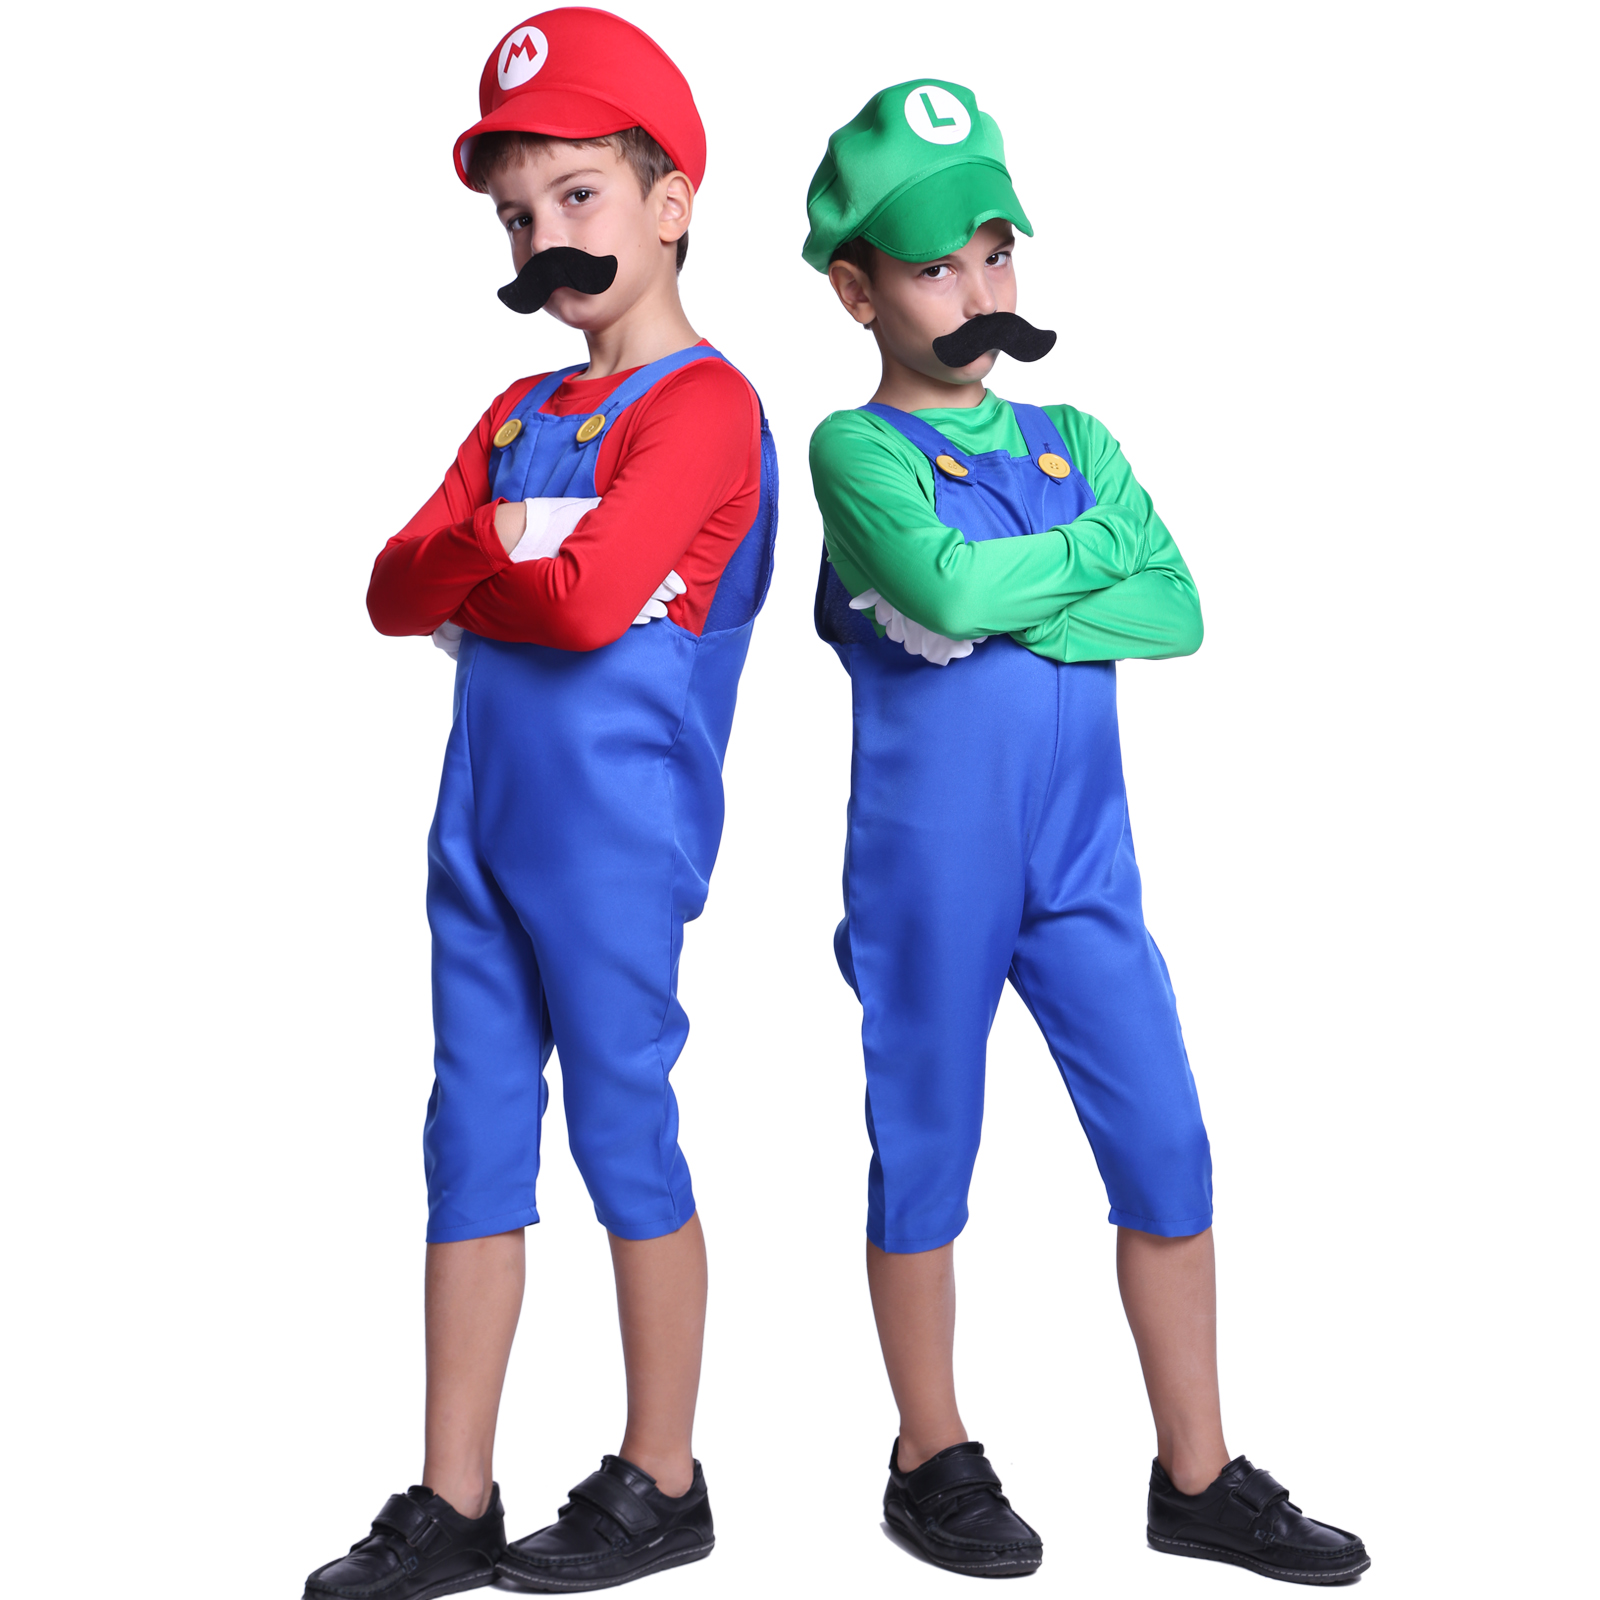 Boys Super Mario Luigi Bros Cosplay Costume Plumber Workman